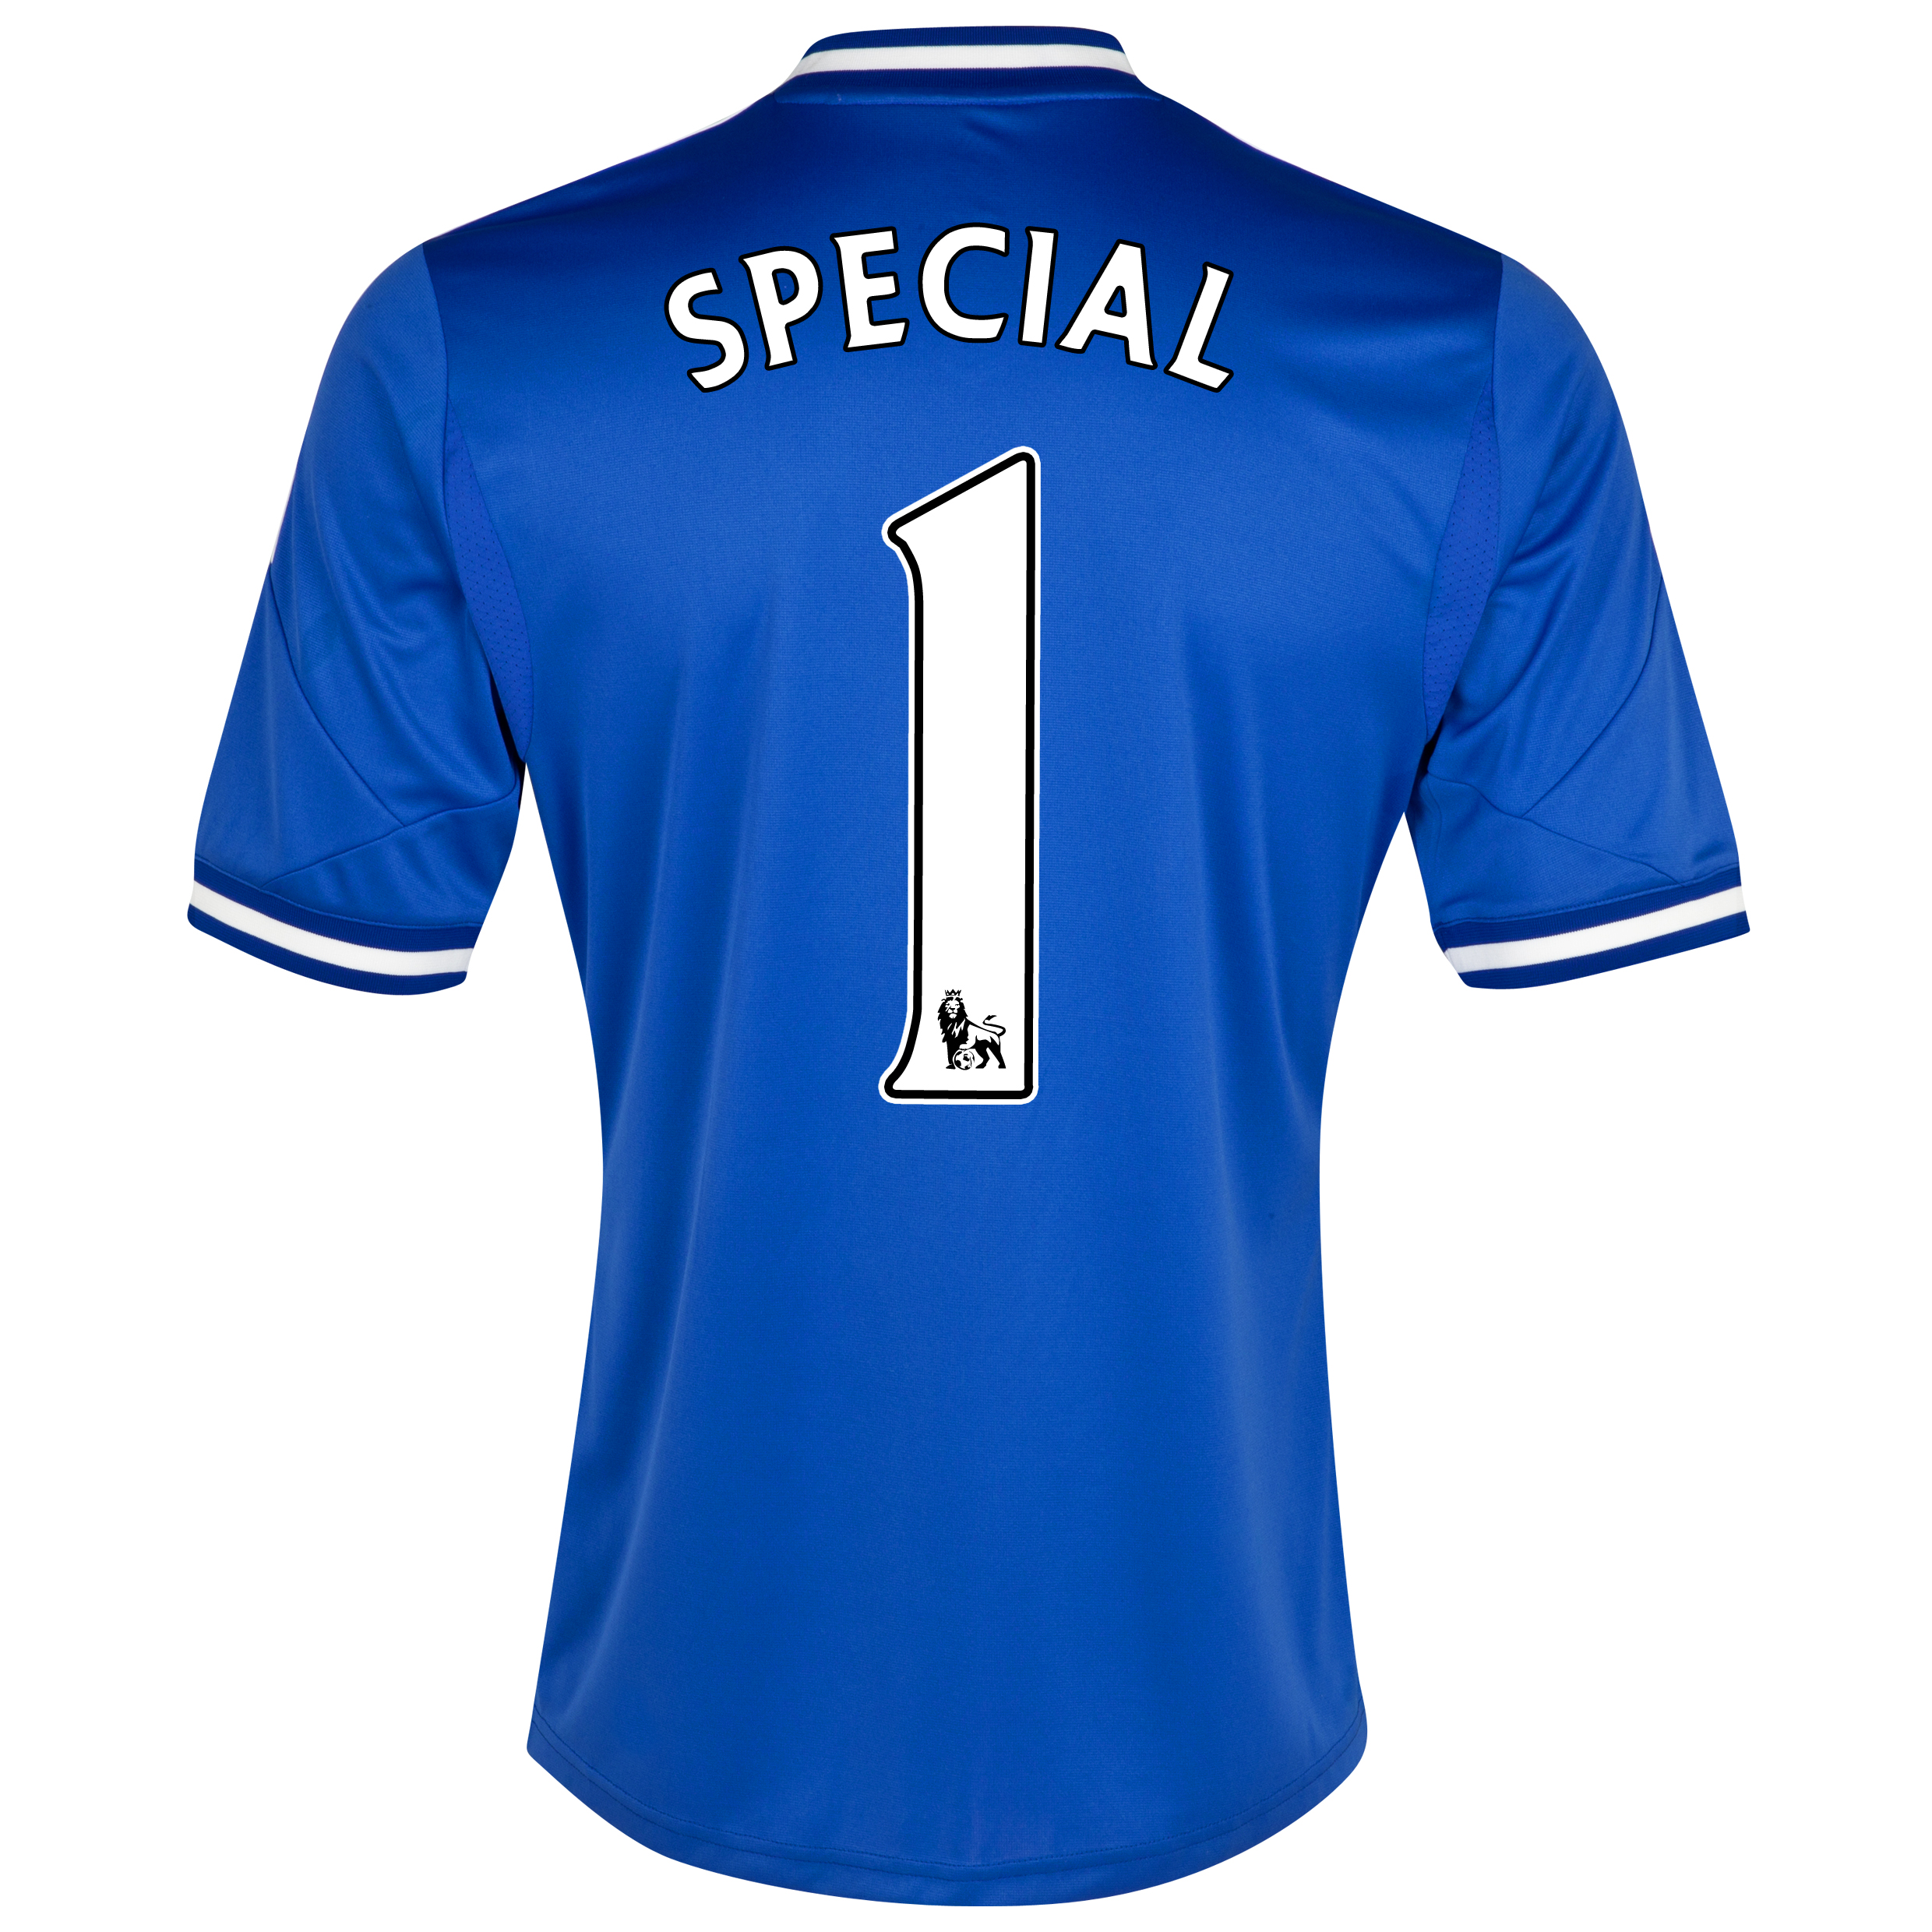 Chelsea Home Shirt 2013/14 with Special 1 printing